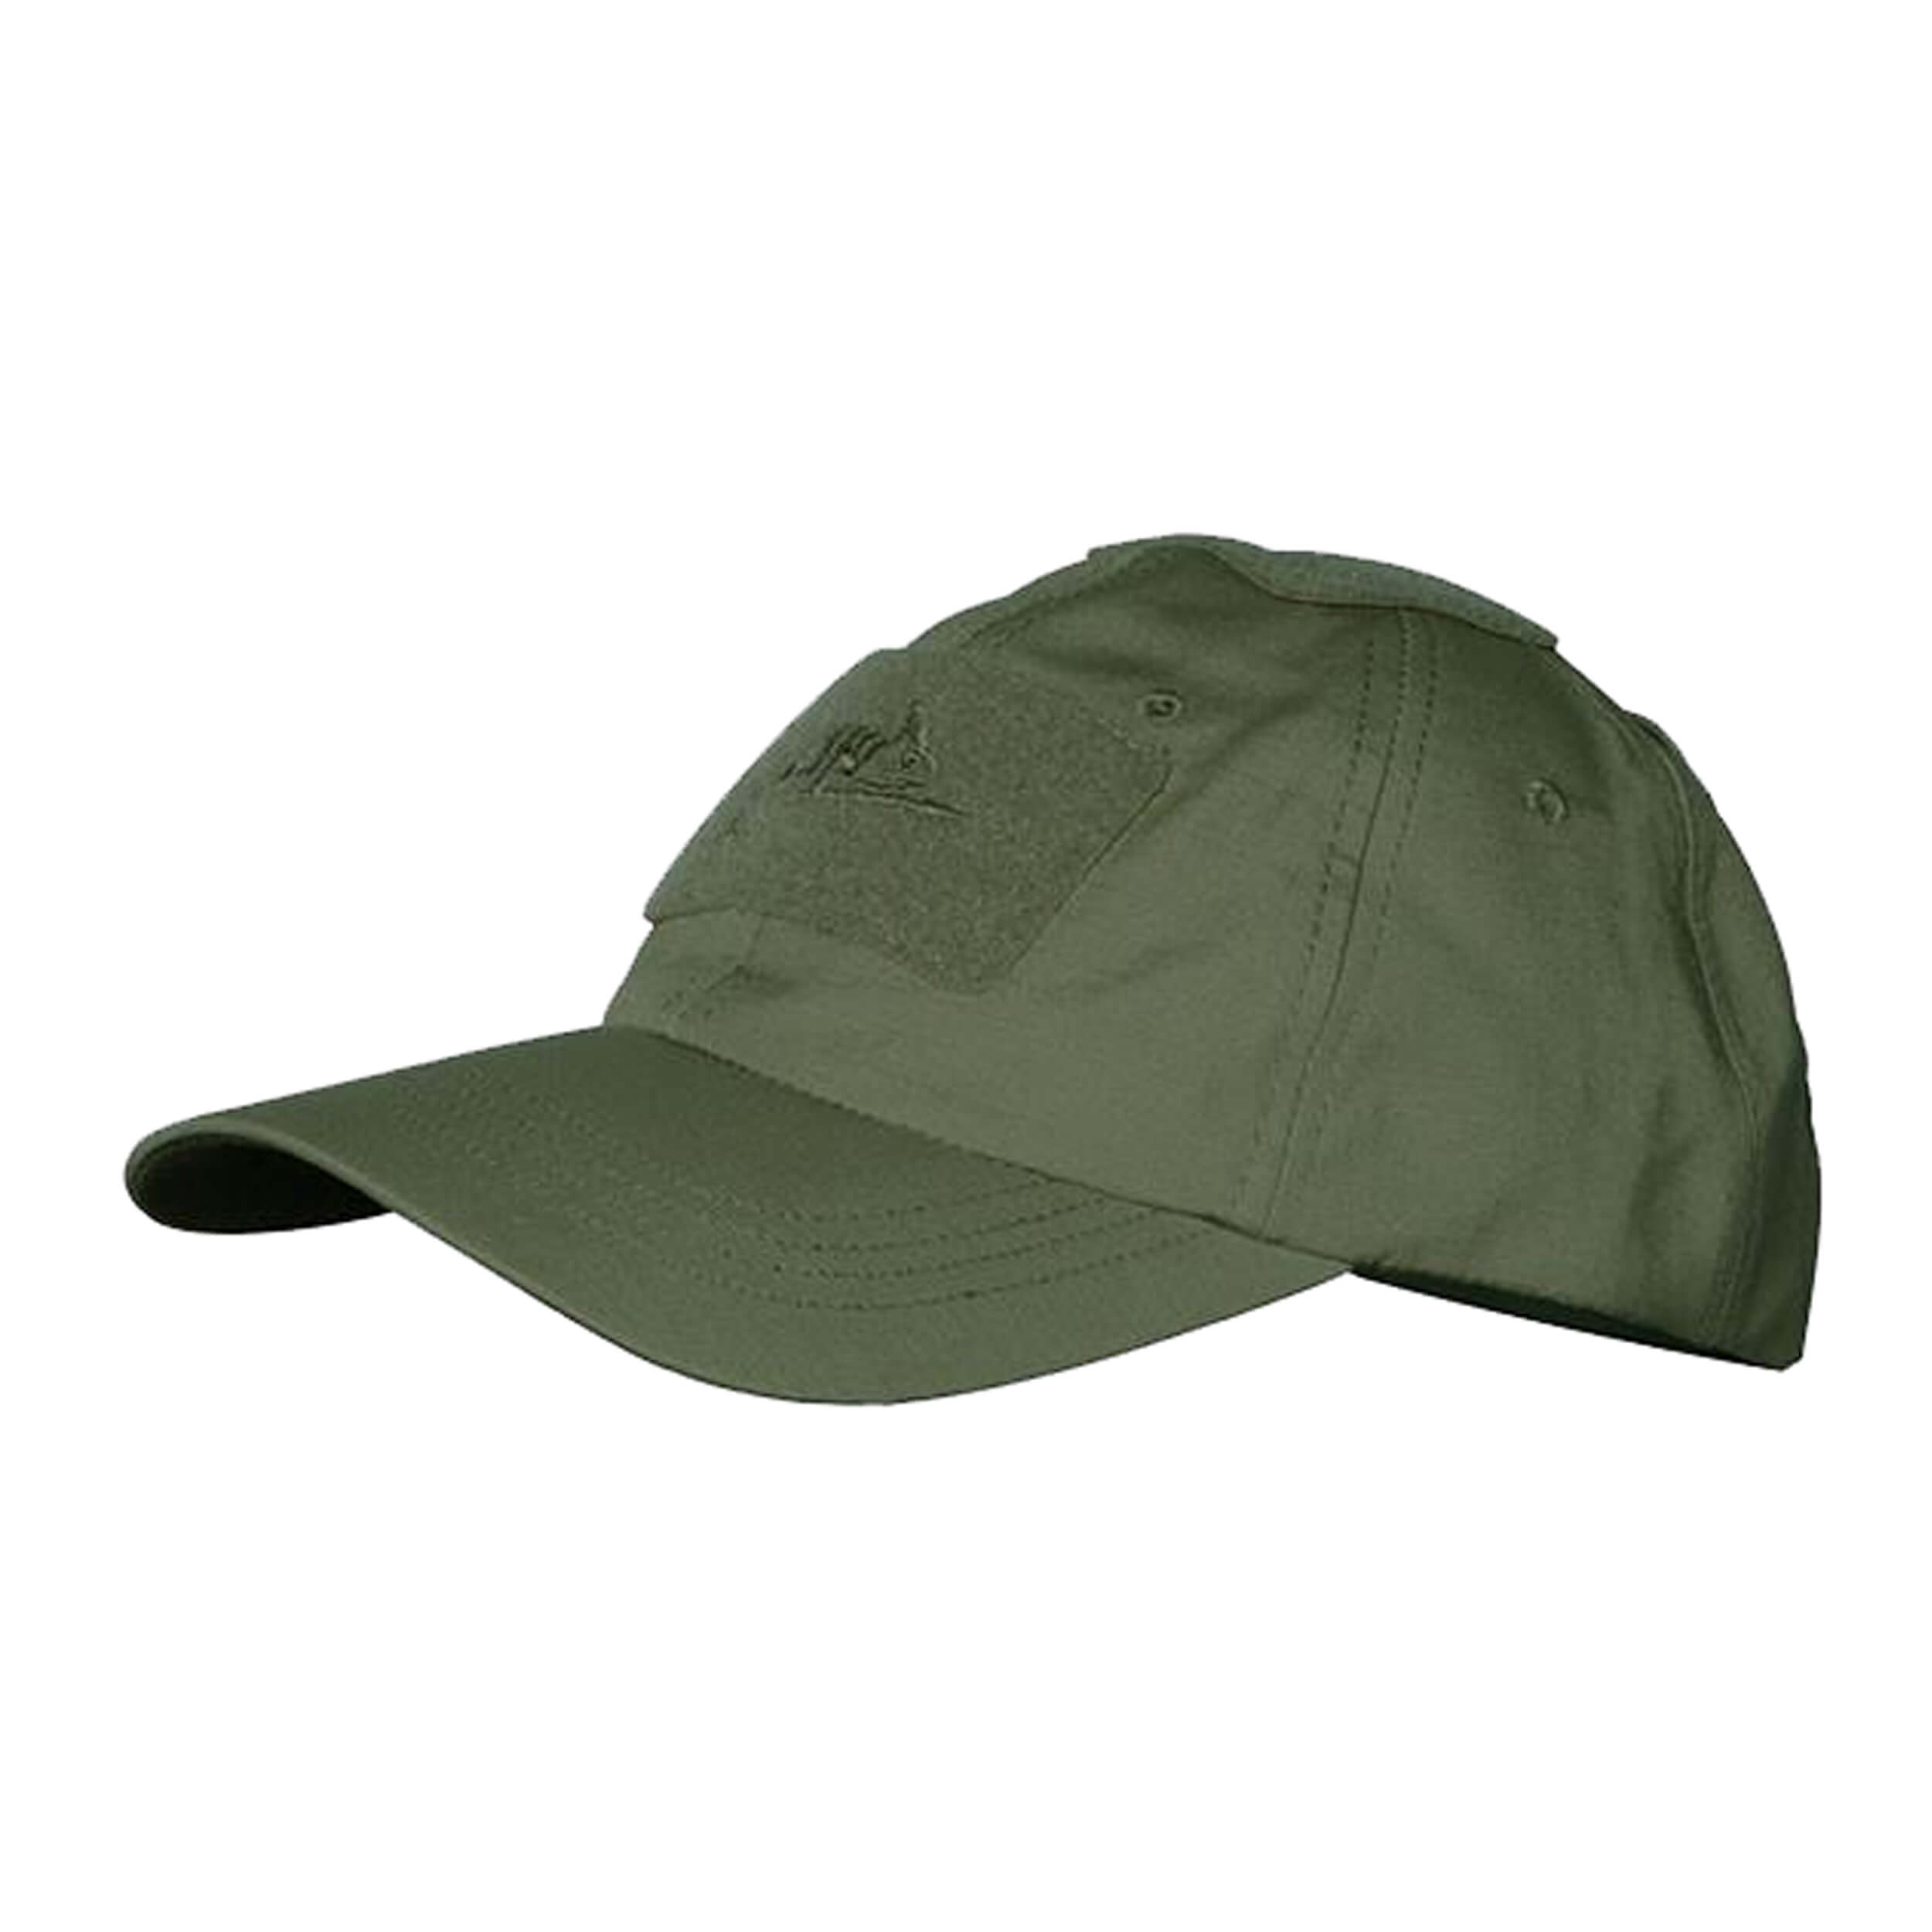 Helikon-Tex Tactical BBC Cap - PolyCotton Ripstop - Olive Green